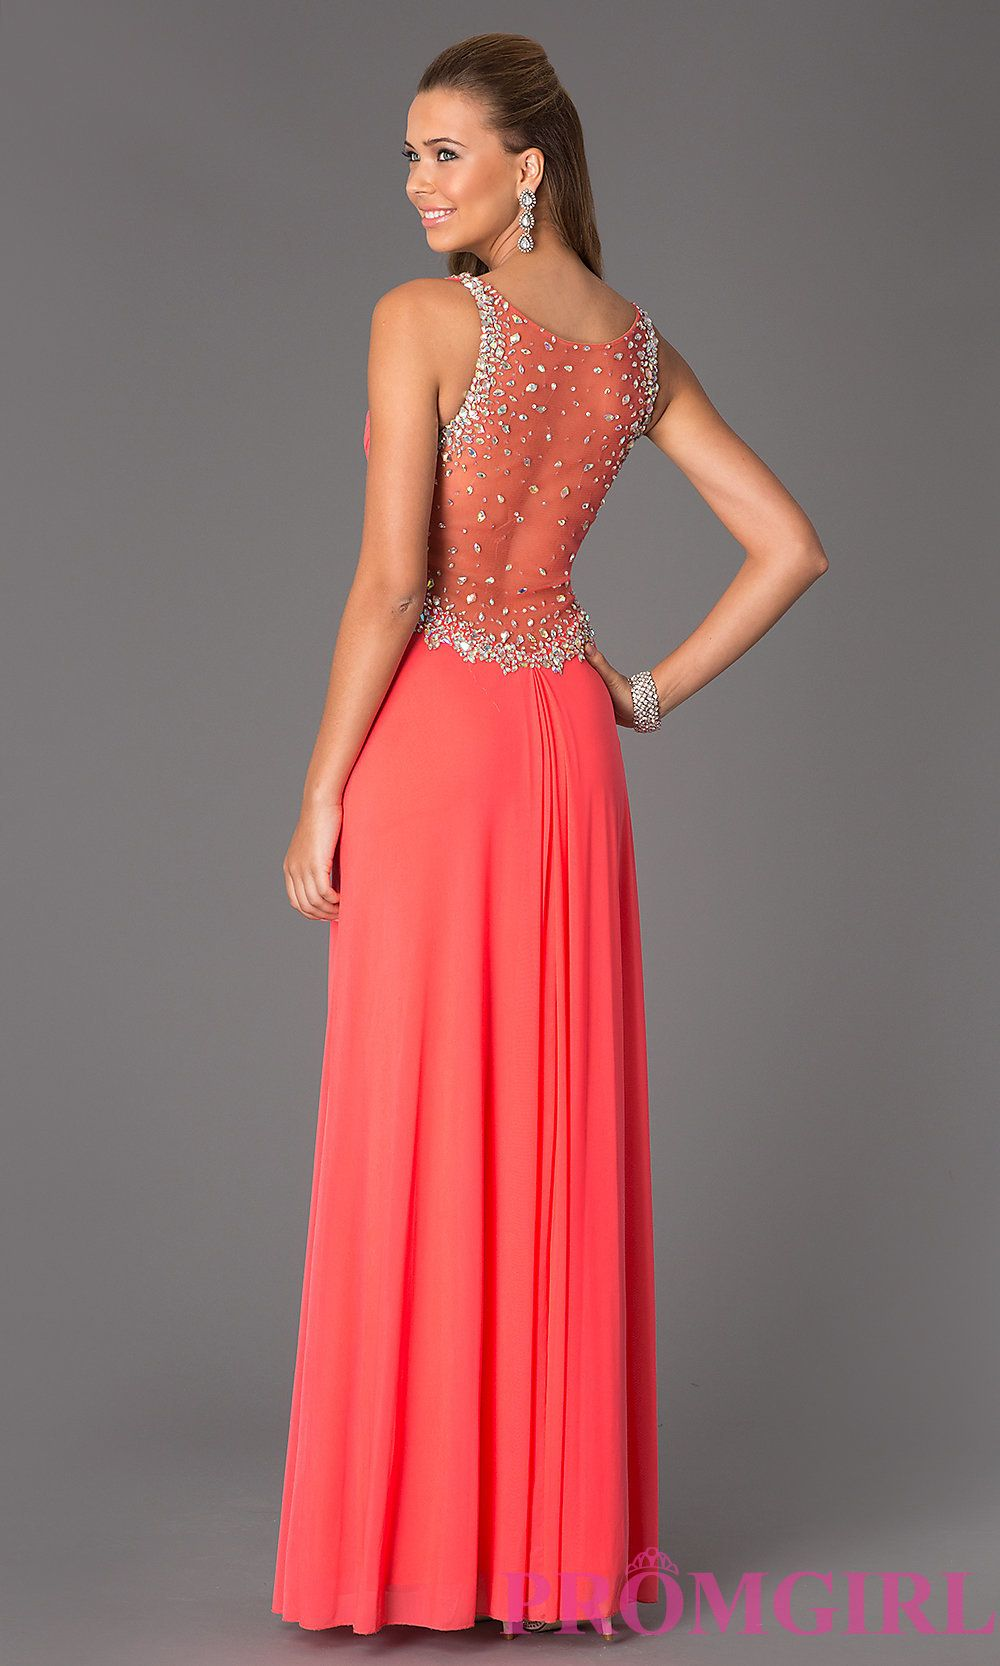 a5a981c097 Sleeveless V-Neck Floor Length JVN by Jovani Dress  promgirl  dress  prom   preview